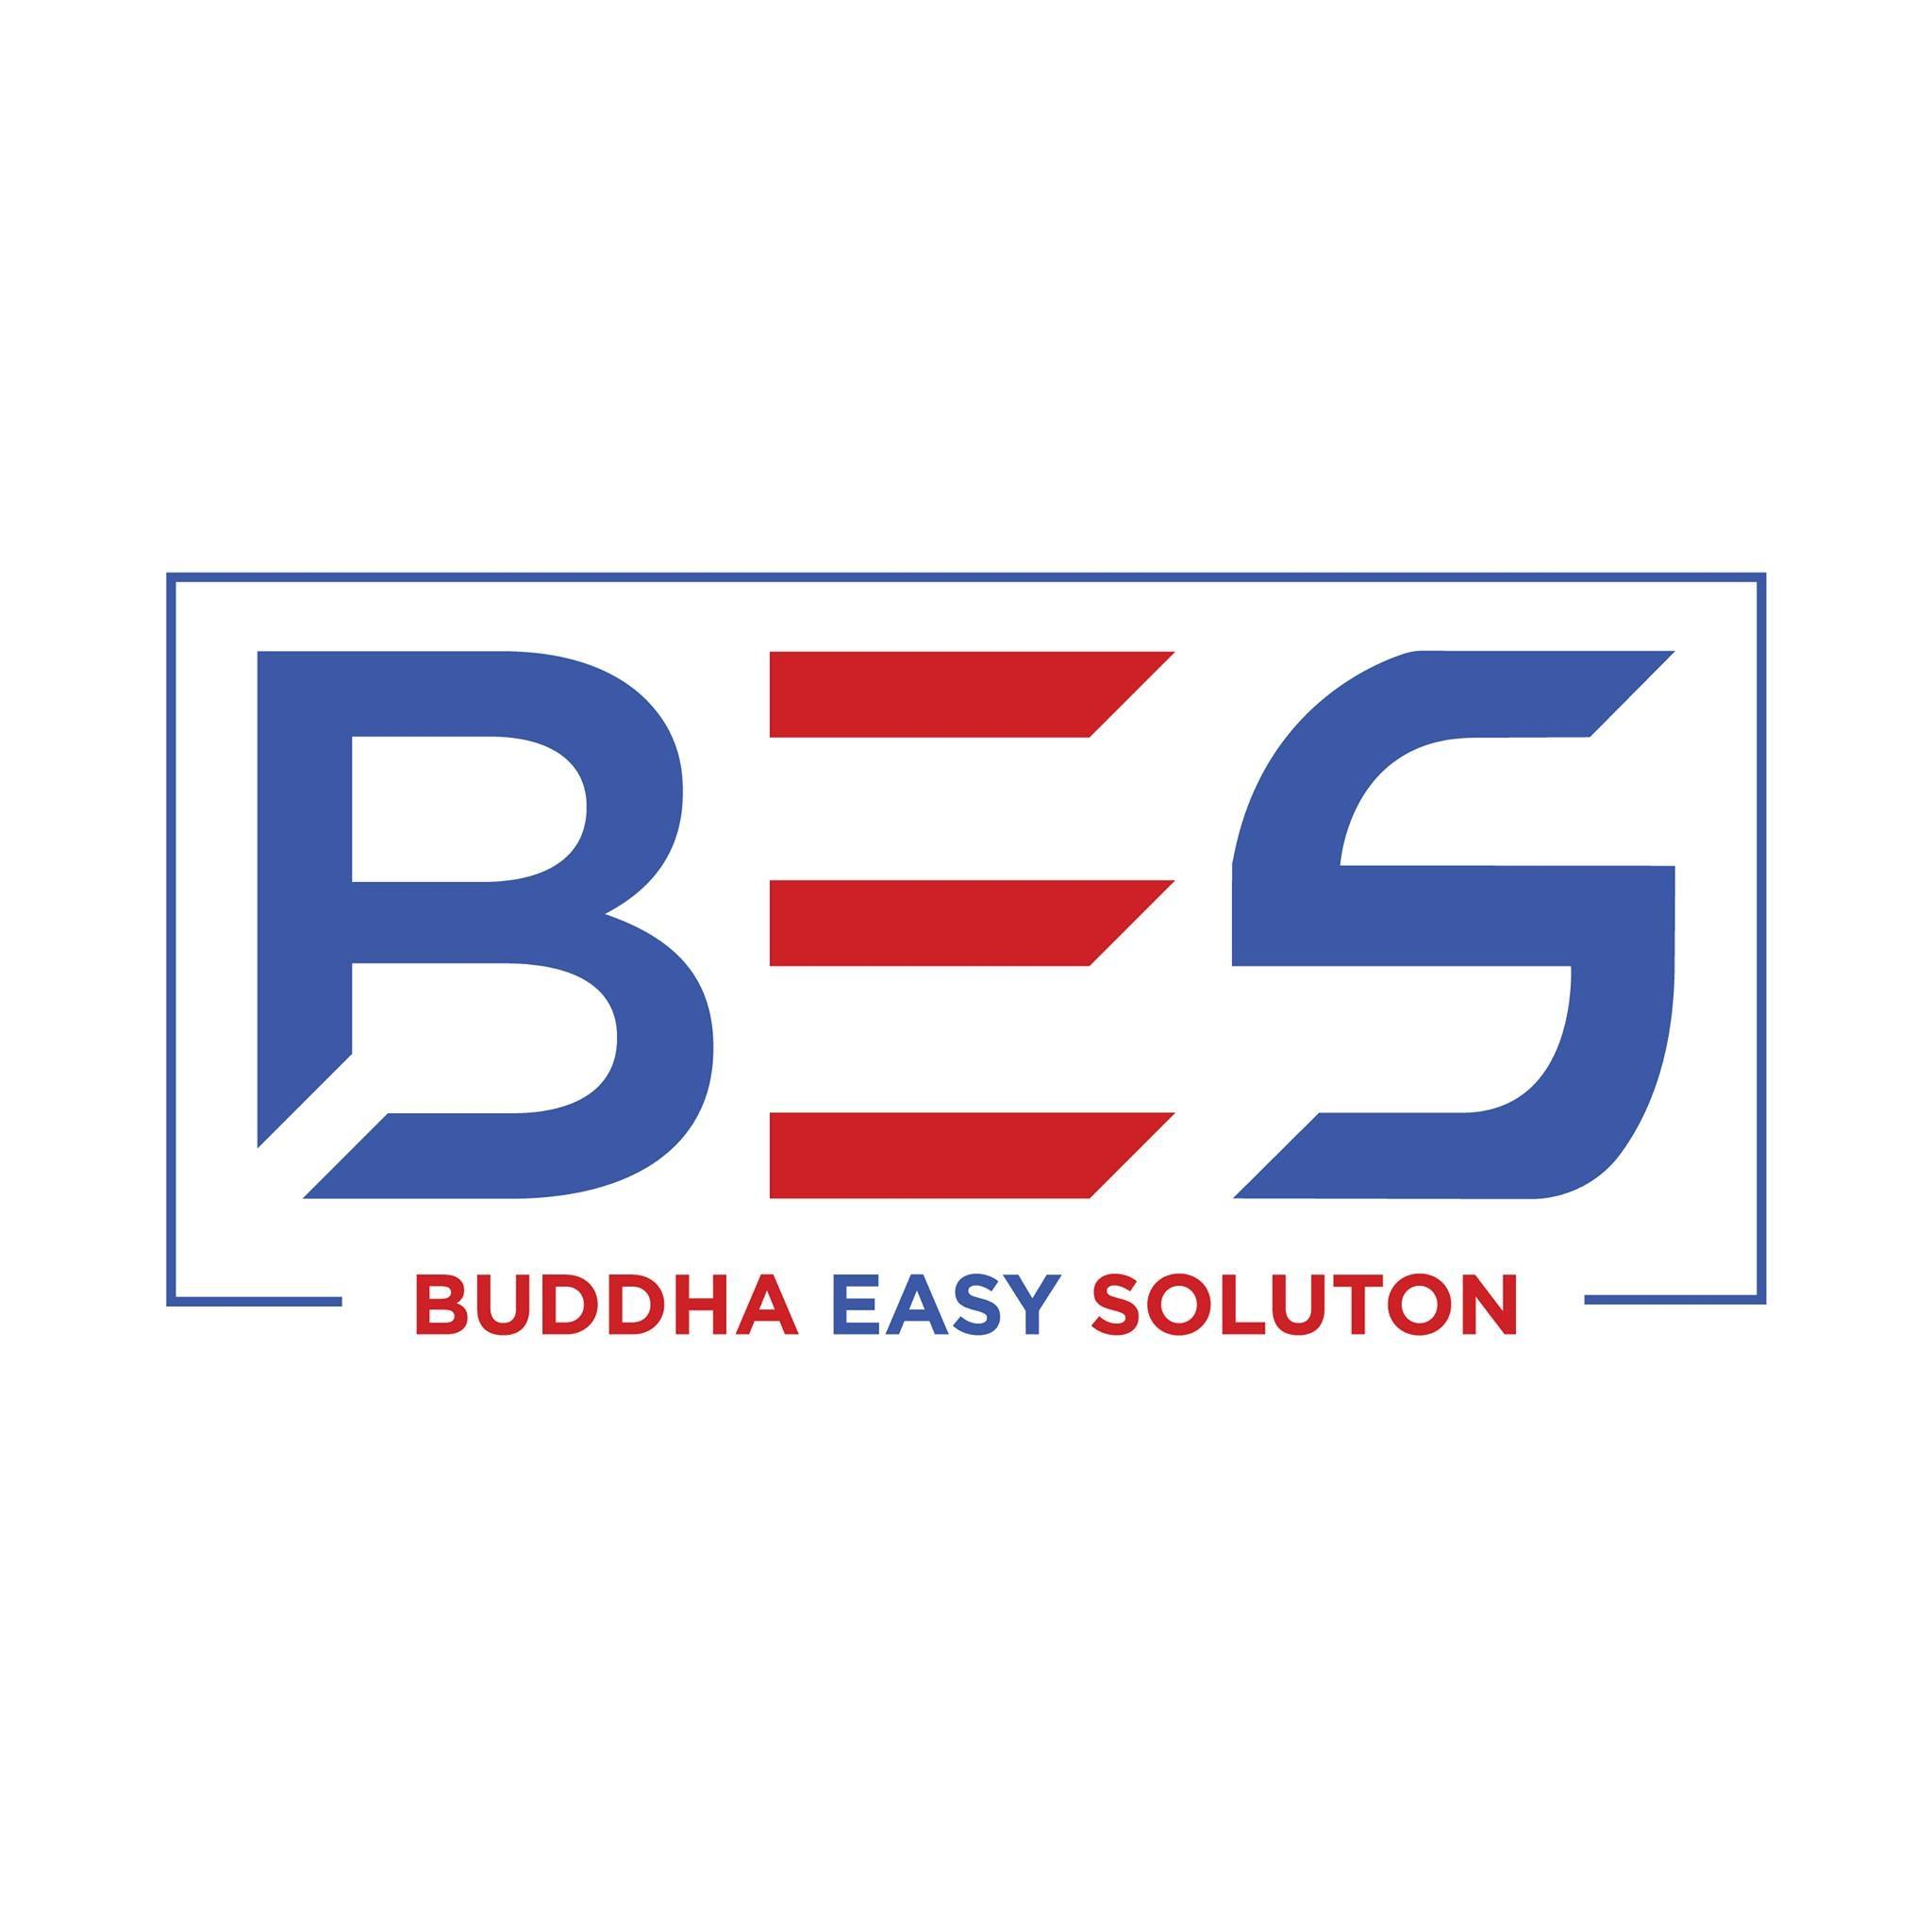 Buddha Easy Solution